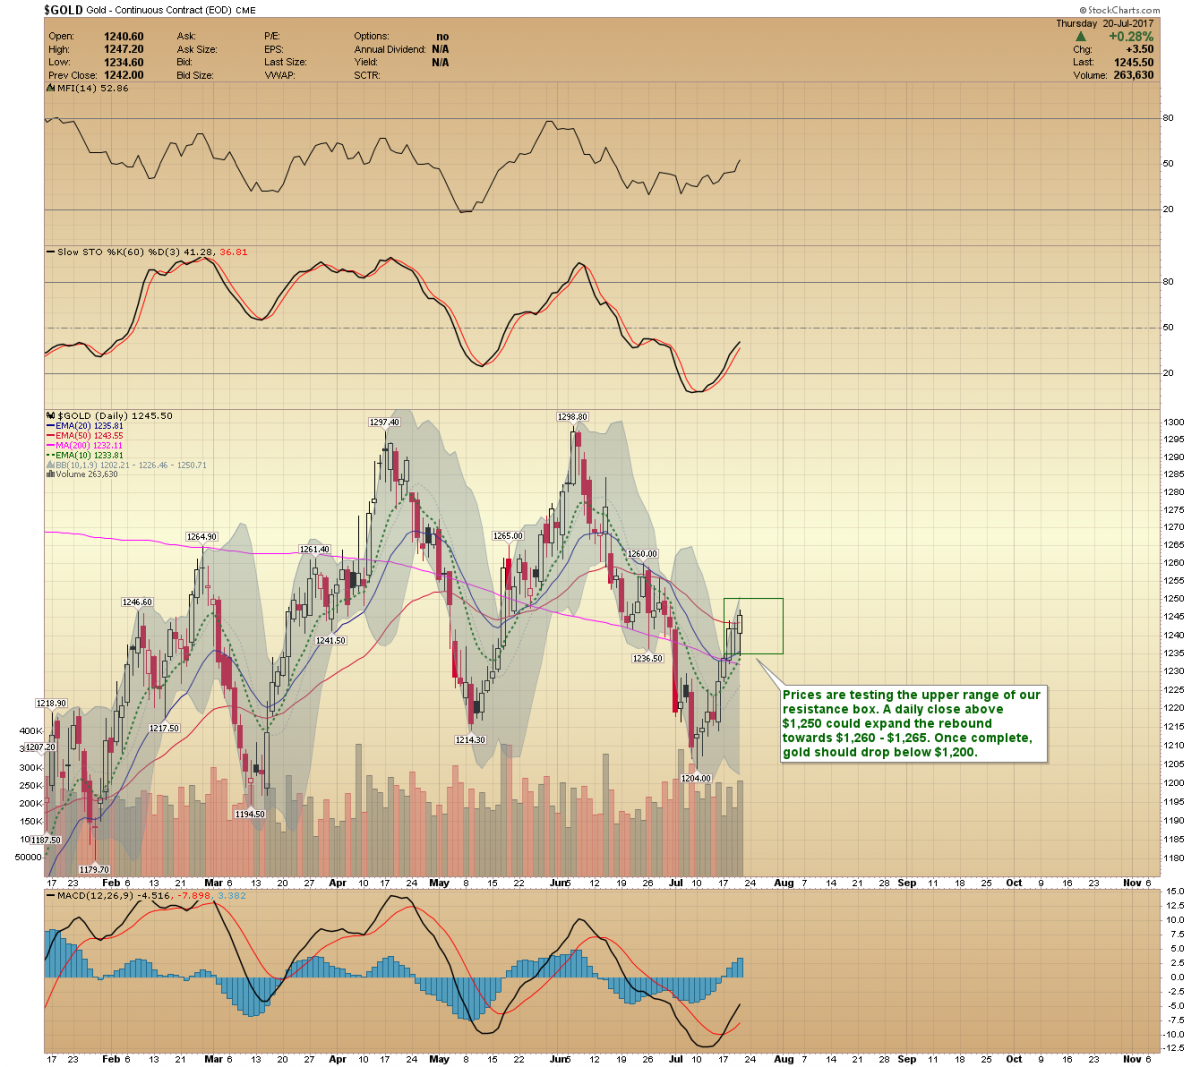 Gold forecast a decline below 1200 before bottoming gold gold price chart nvjuhfo Choice Image